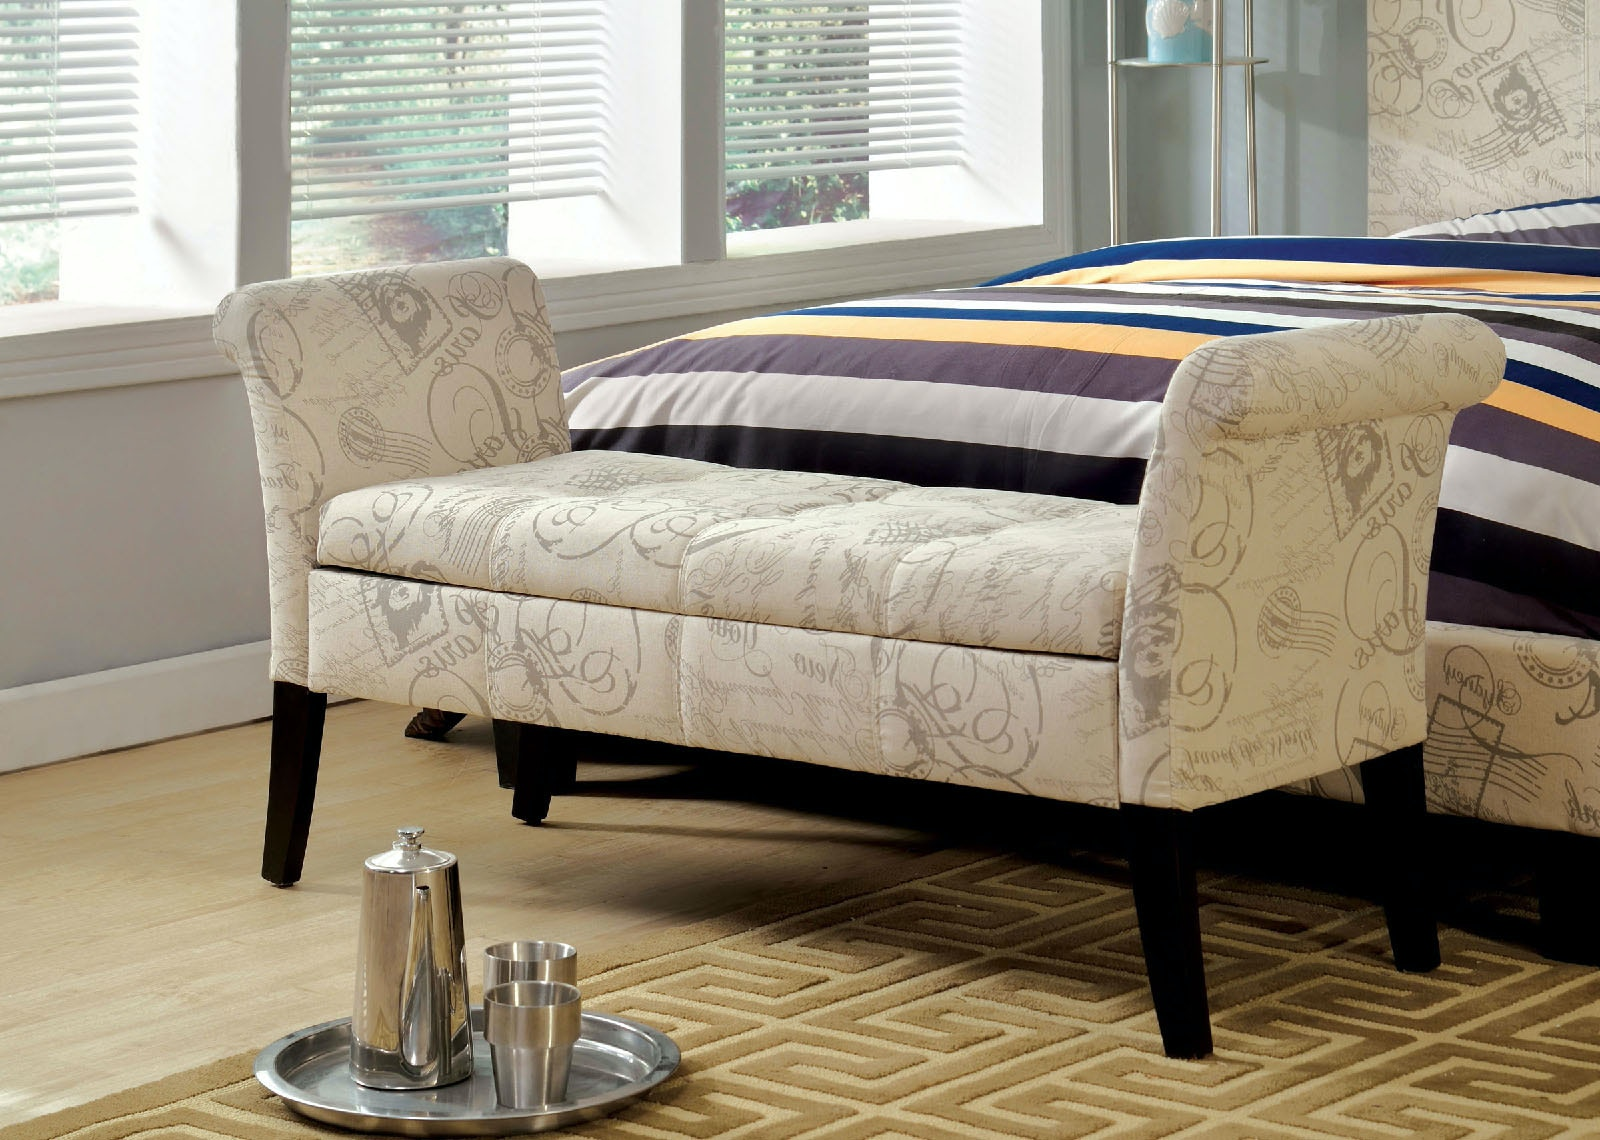 Furniture Of America Living Room Storage Bench, Wt Fabric CM BN6190WT At  The Furniture Mall